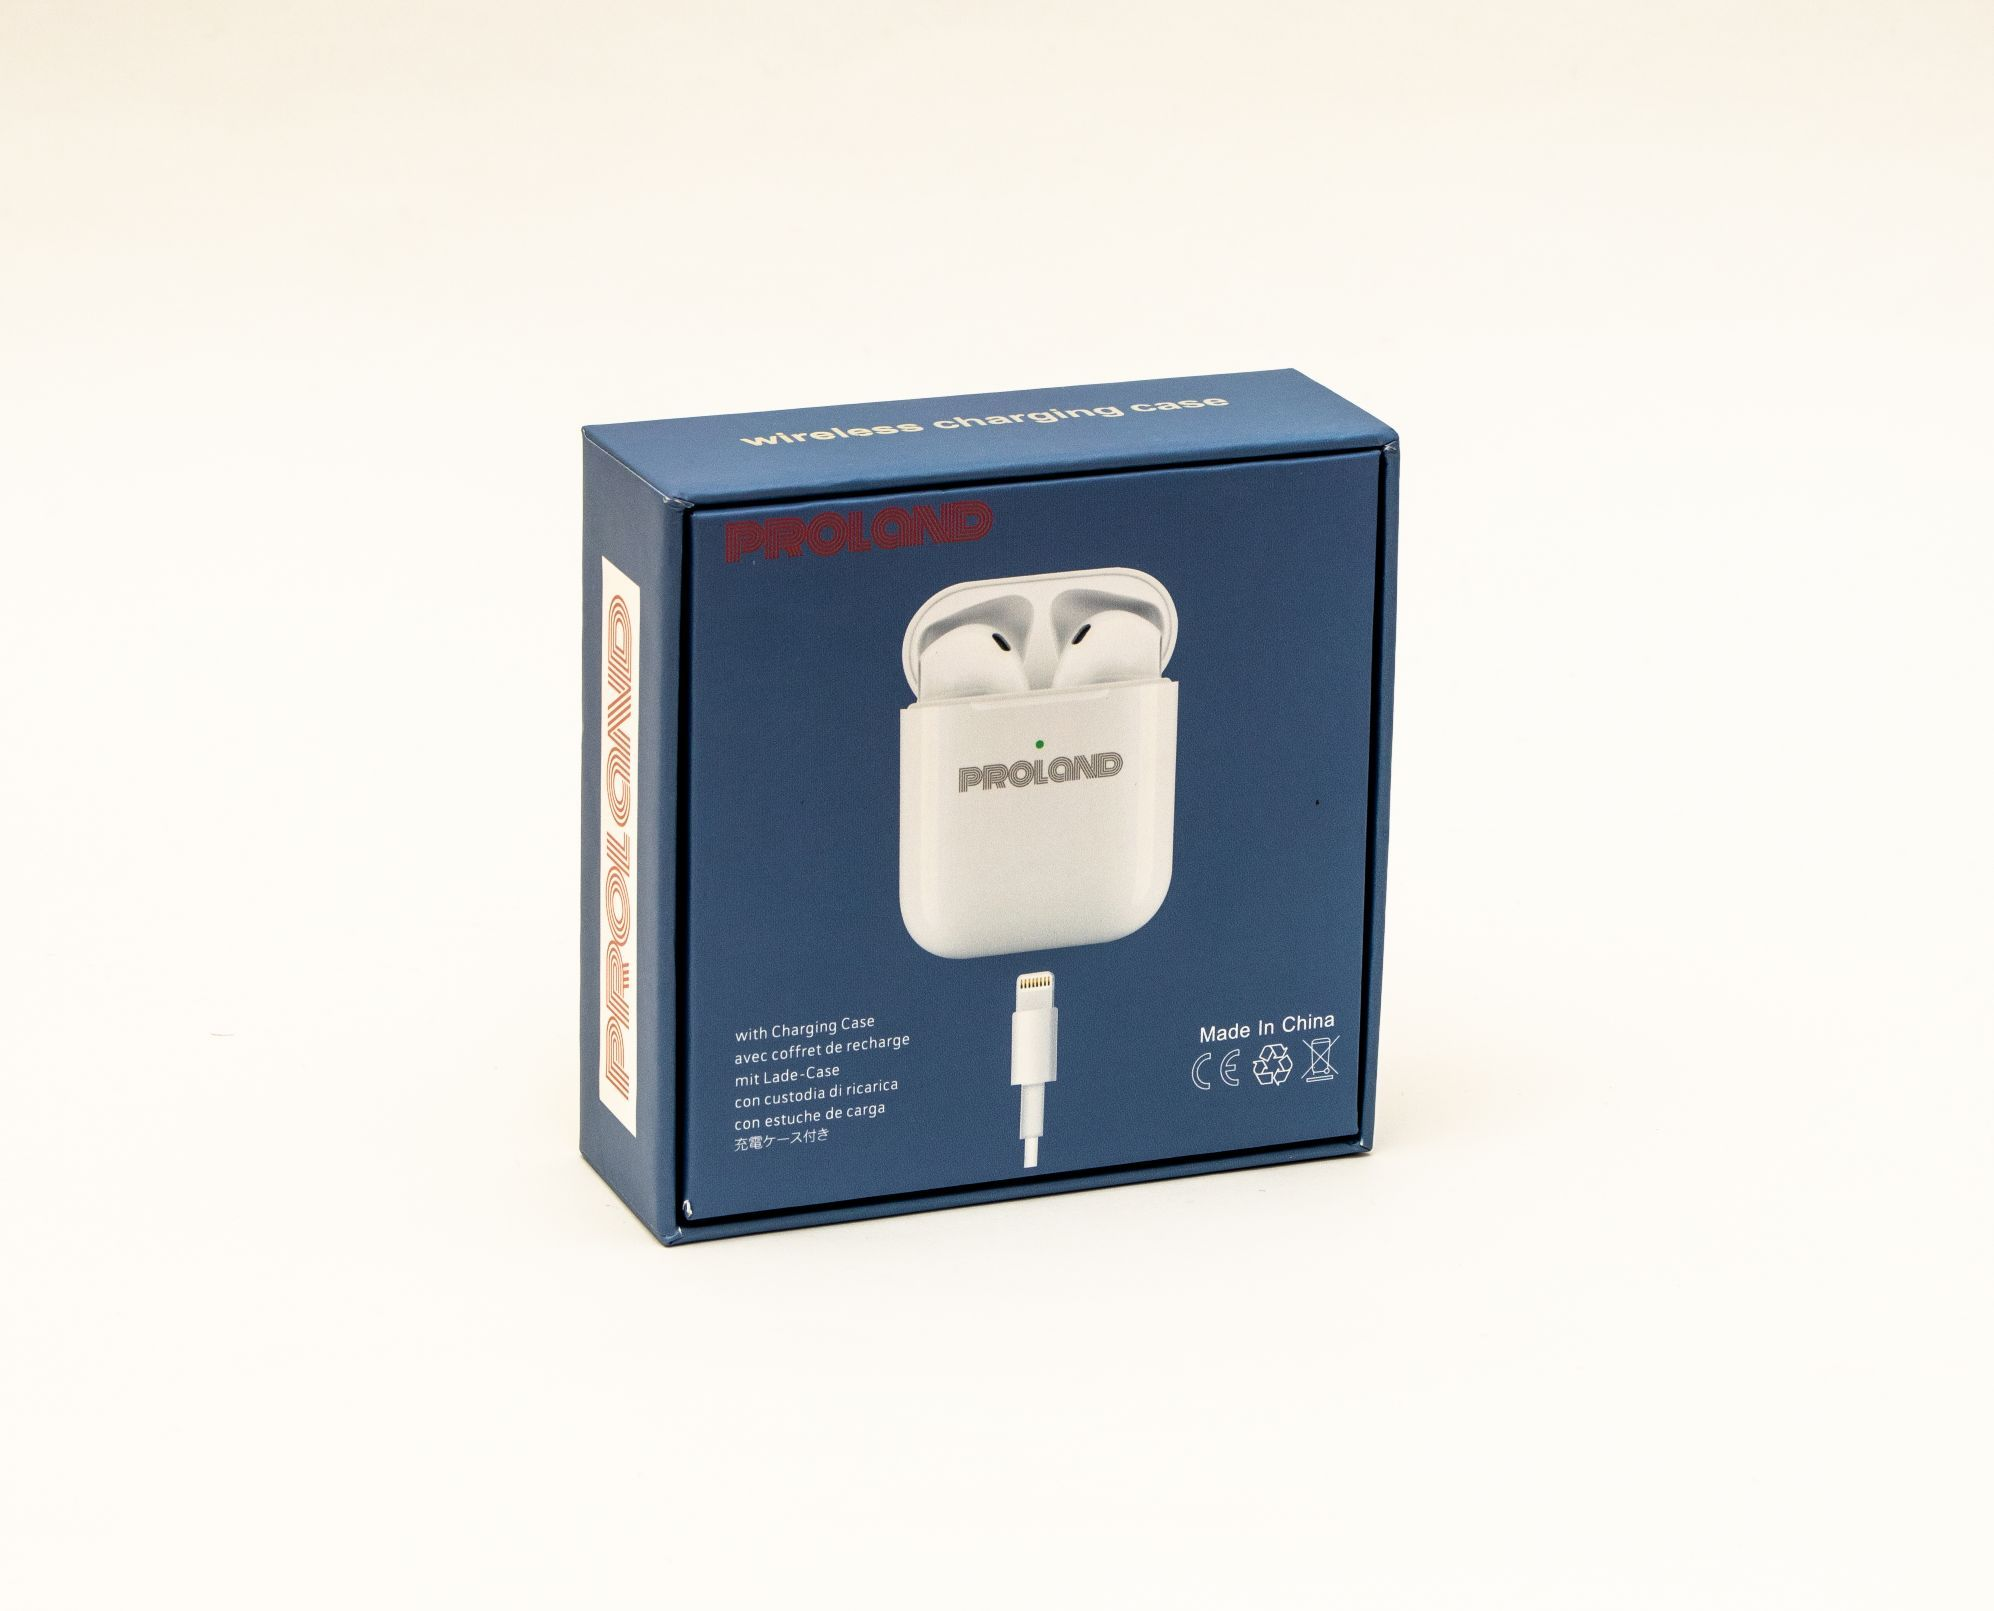 Airpods Proland Ma 2 بسعر 730ج بدل من 950ج Phone Accessories Electronic Products Accessories